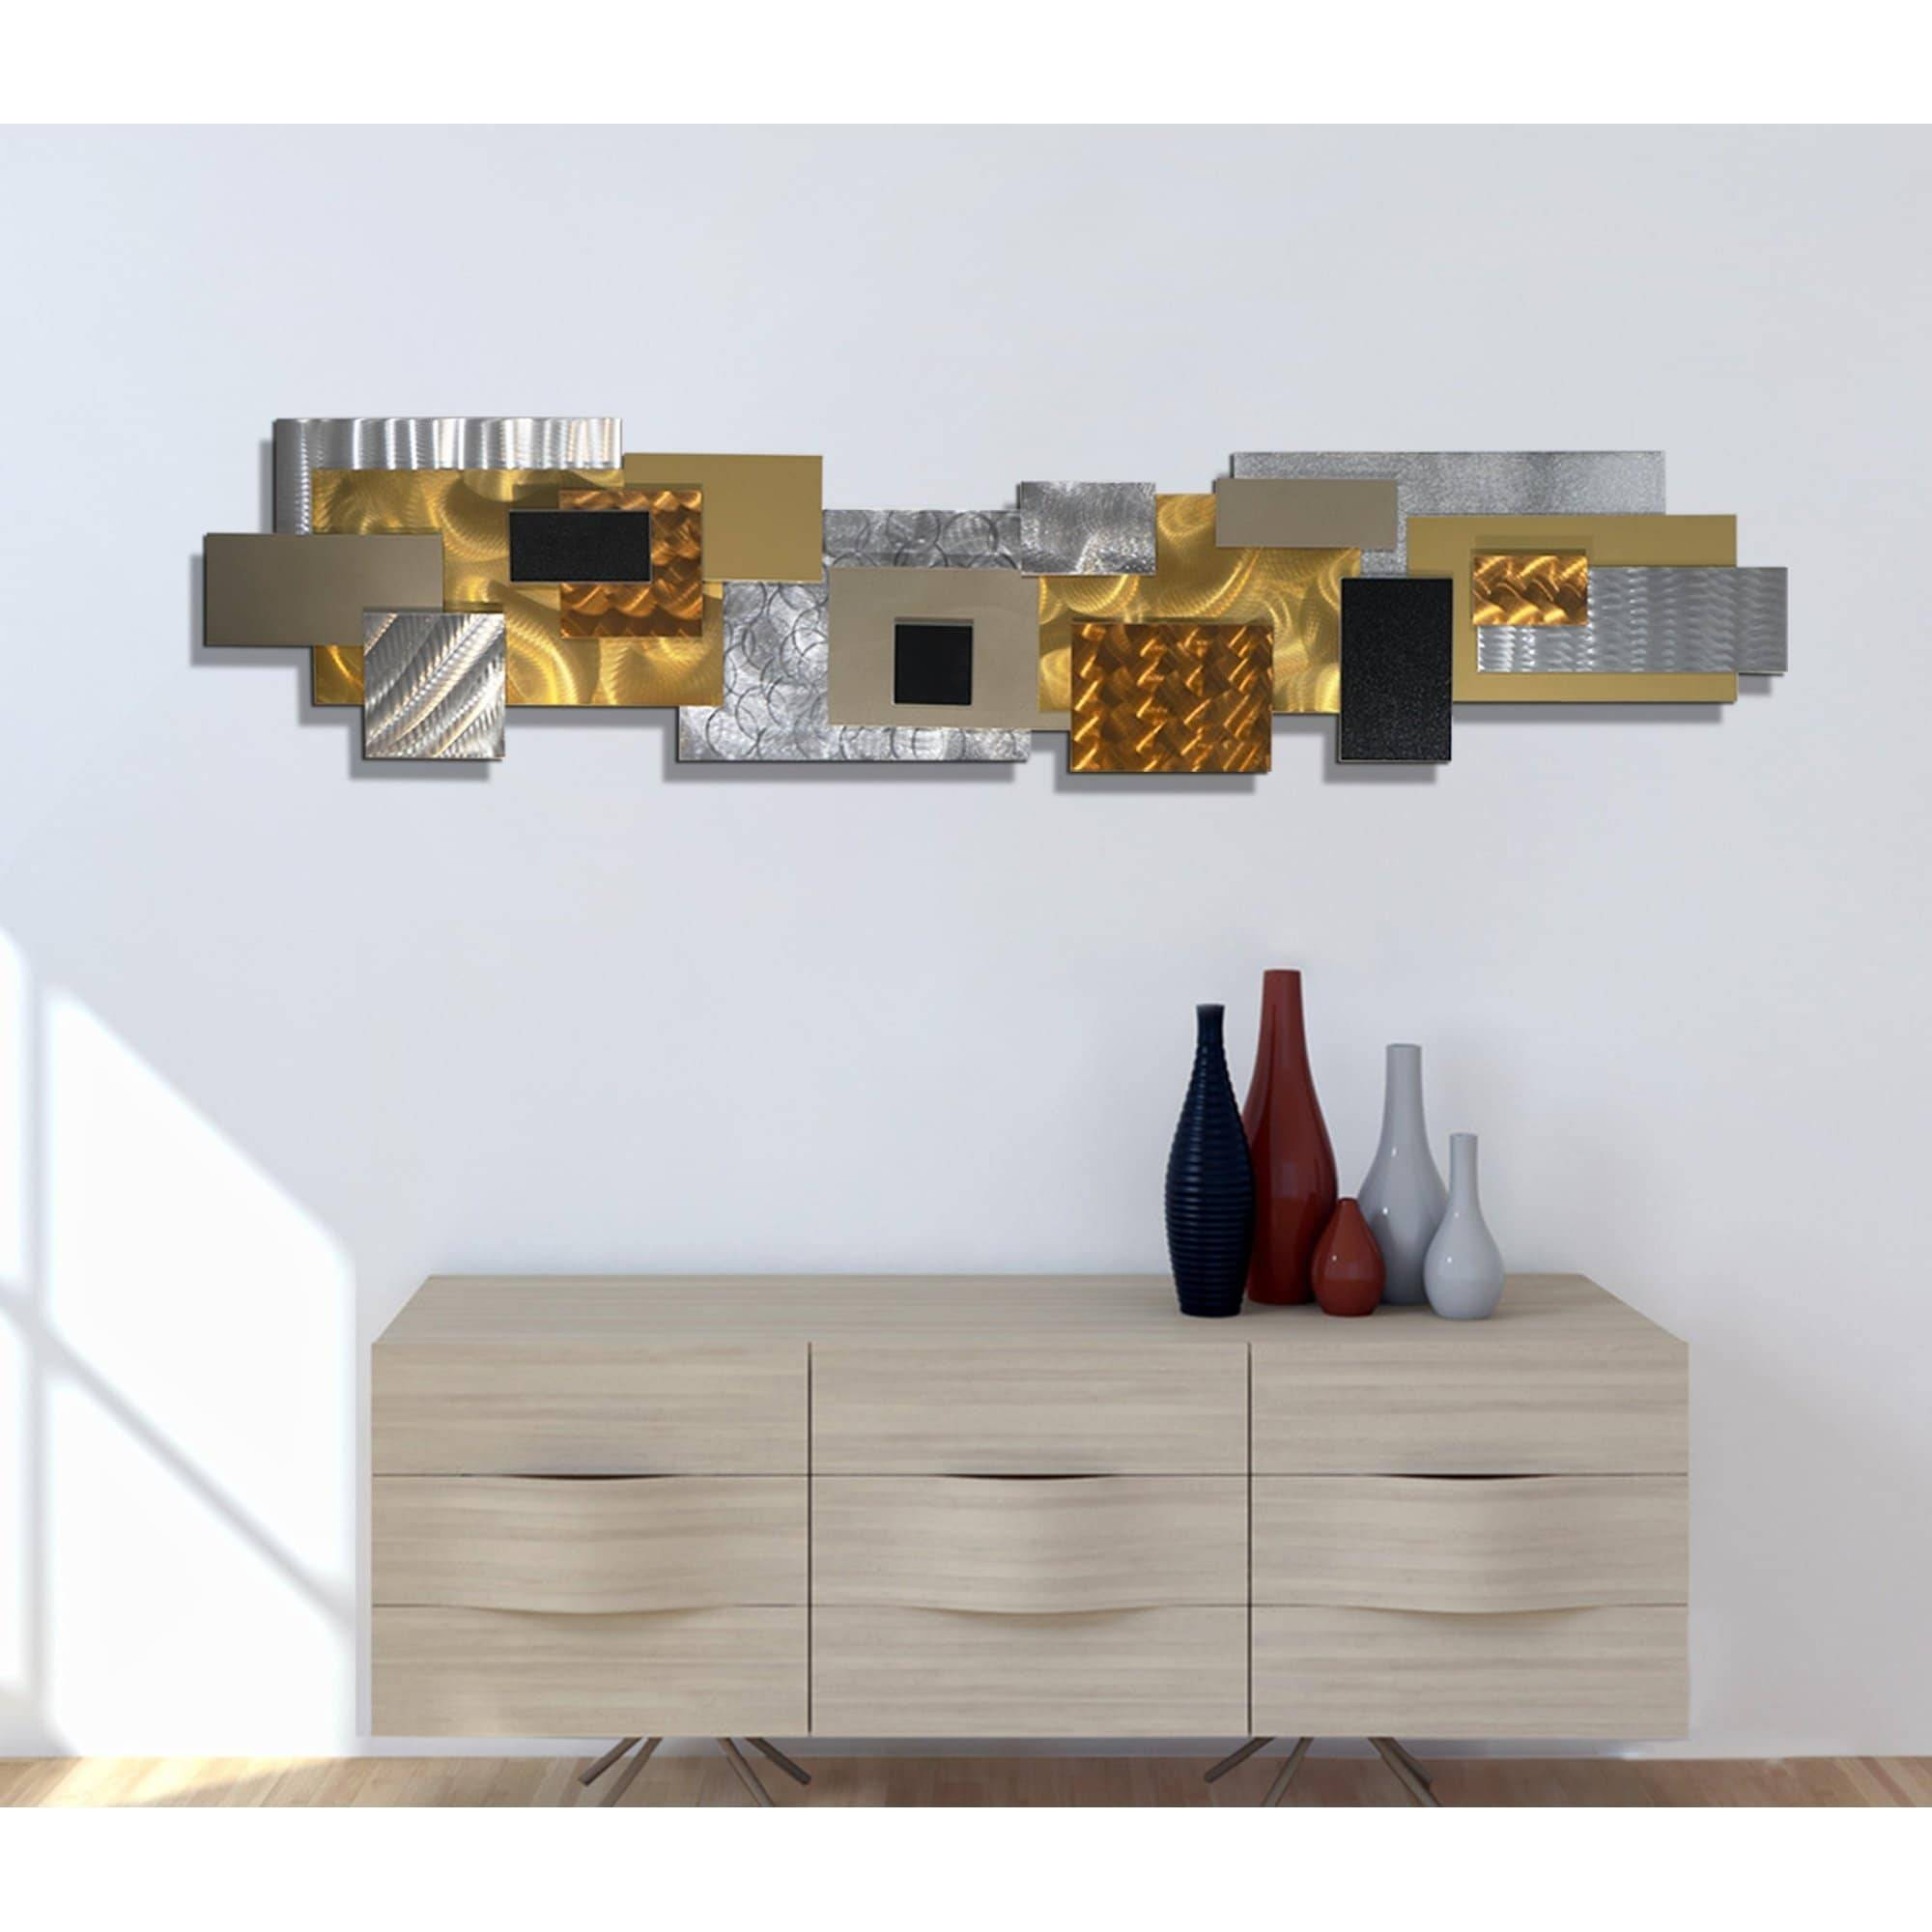 Statements2000 Extra Modern 3D Metal Wall Art Hanging Sculpture Jon Allen Copper Impromto XL